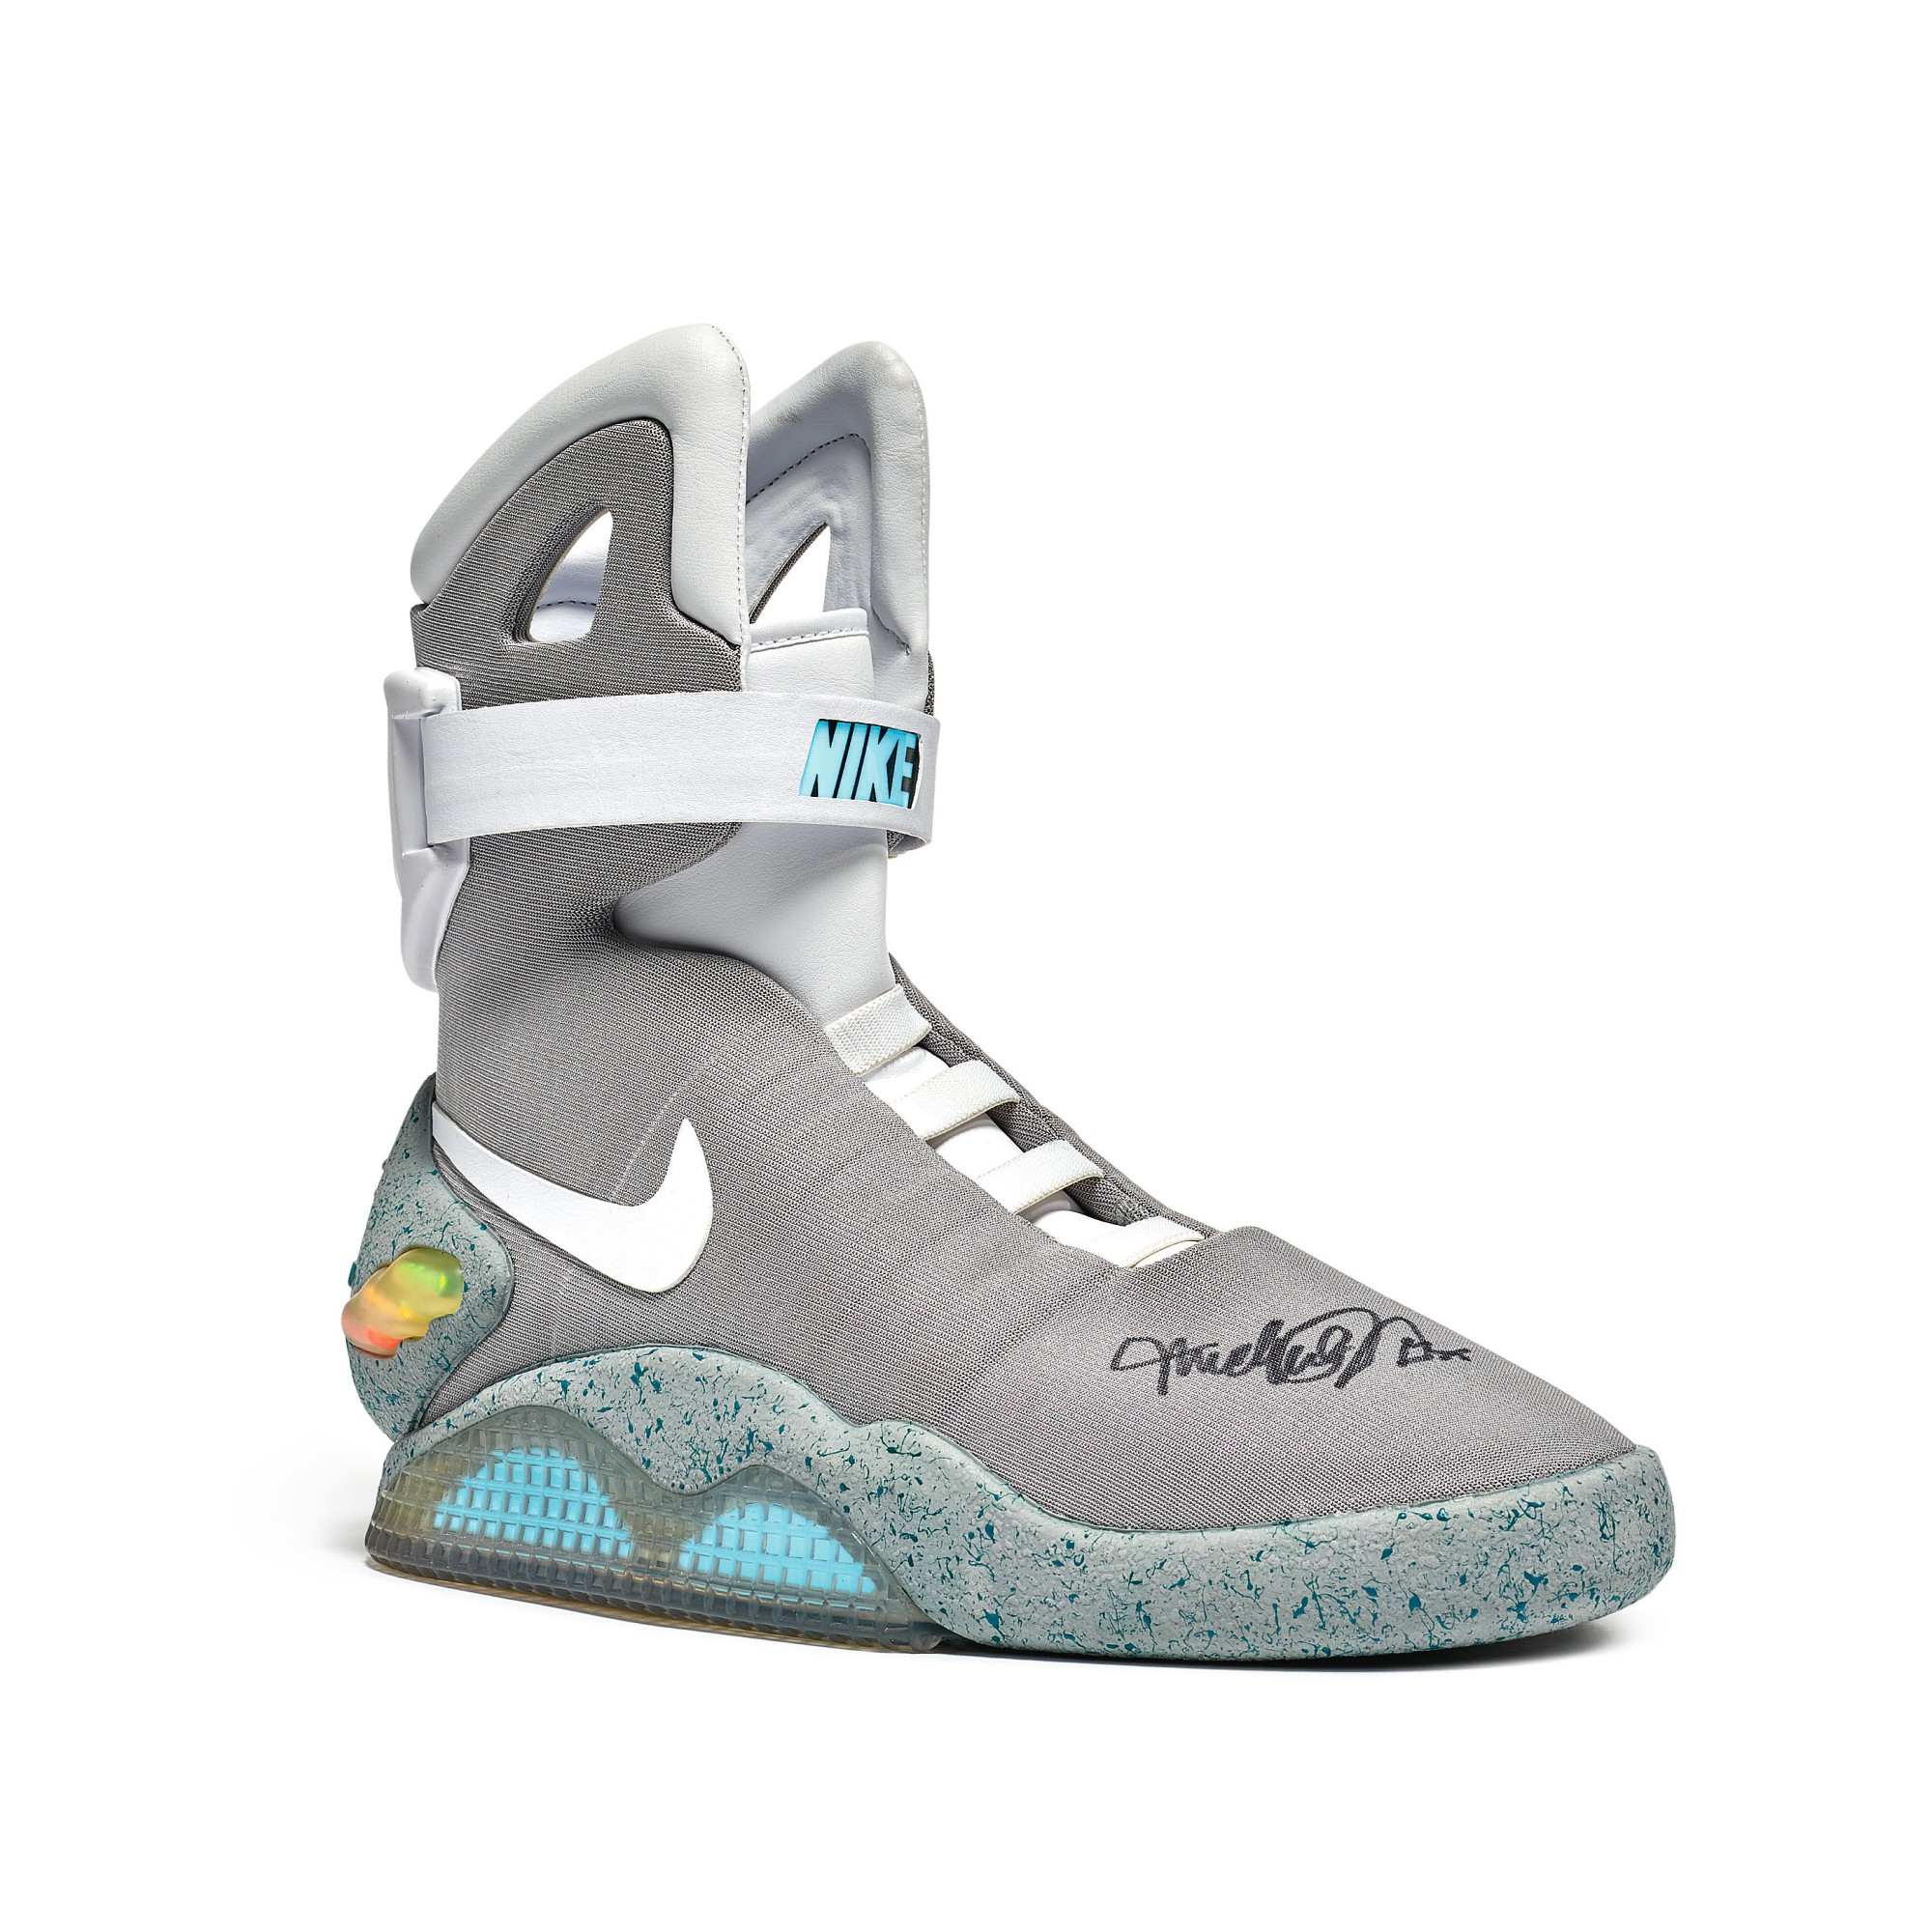 Nike MAG 'Back to the Future' | 2011